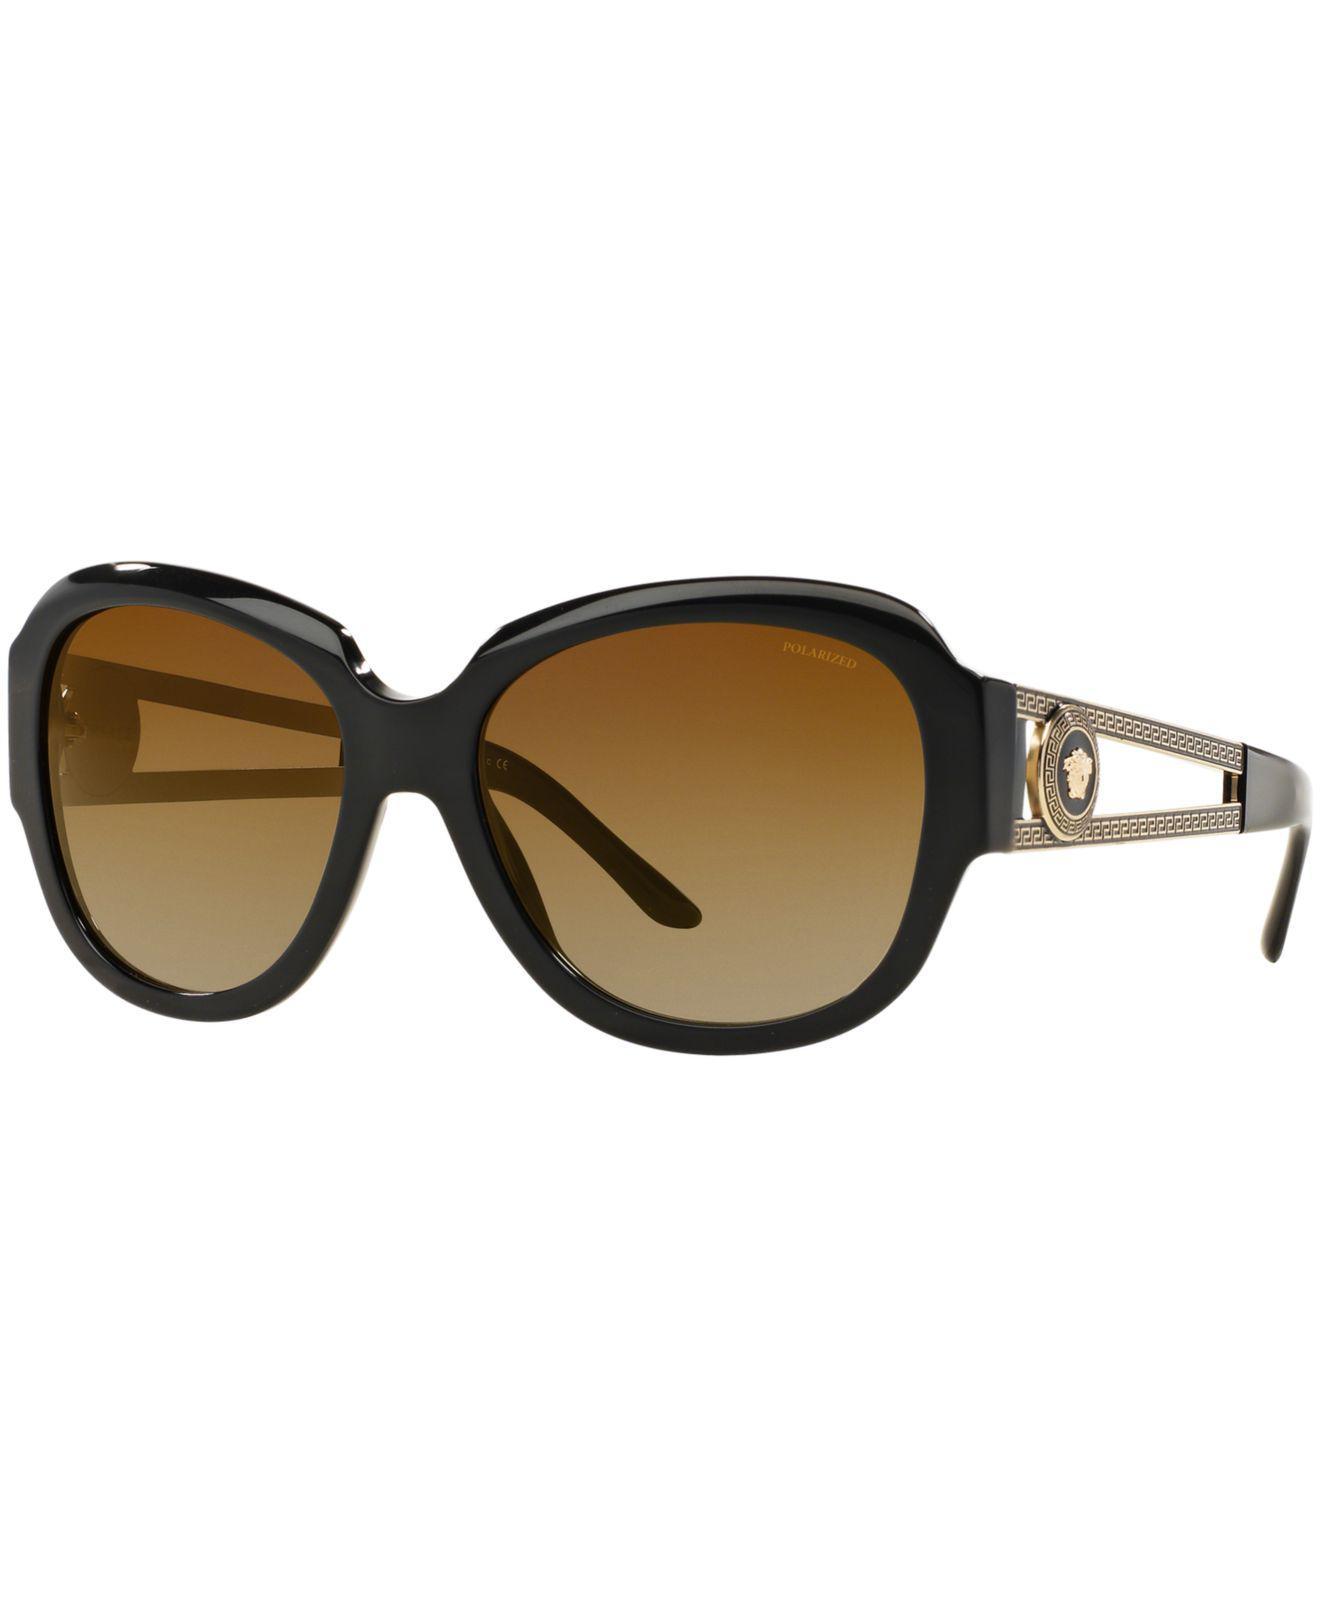 1a2b9046cbc Lyst - Versace Ve4304 in Black